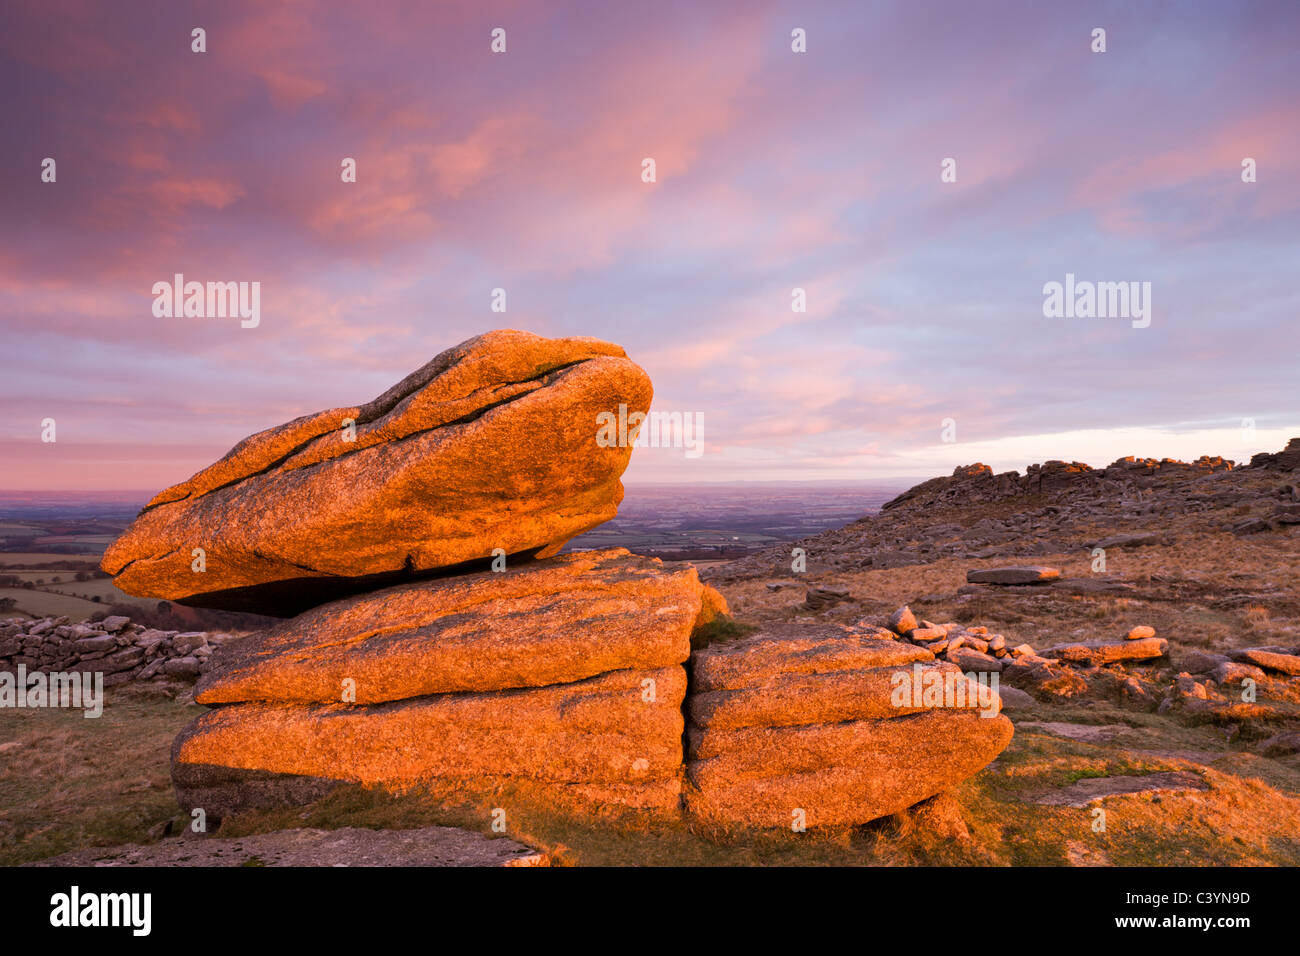 Morning sunlight bathe a granite Logan Rock in a rich glow, Higher Tor, Dartmoor National Park, Devon, England. - Stock Image